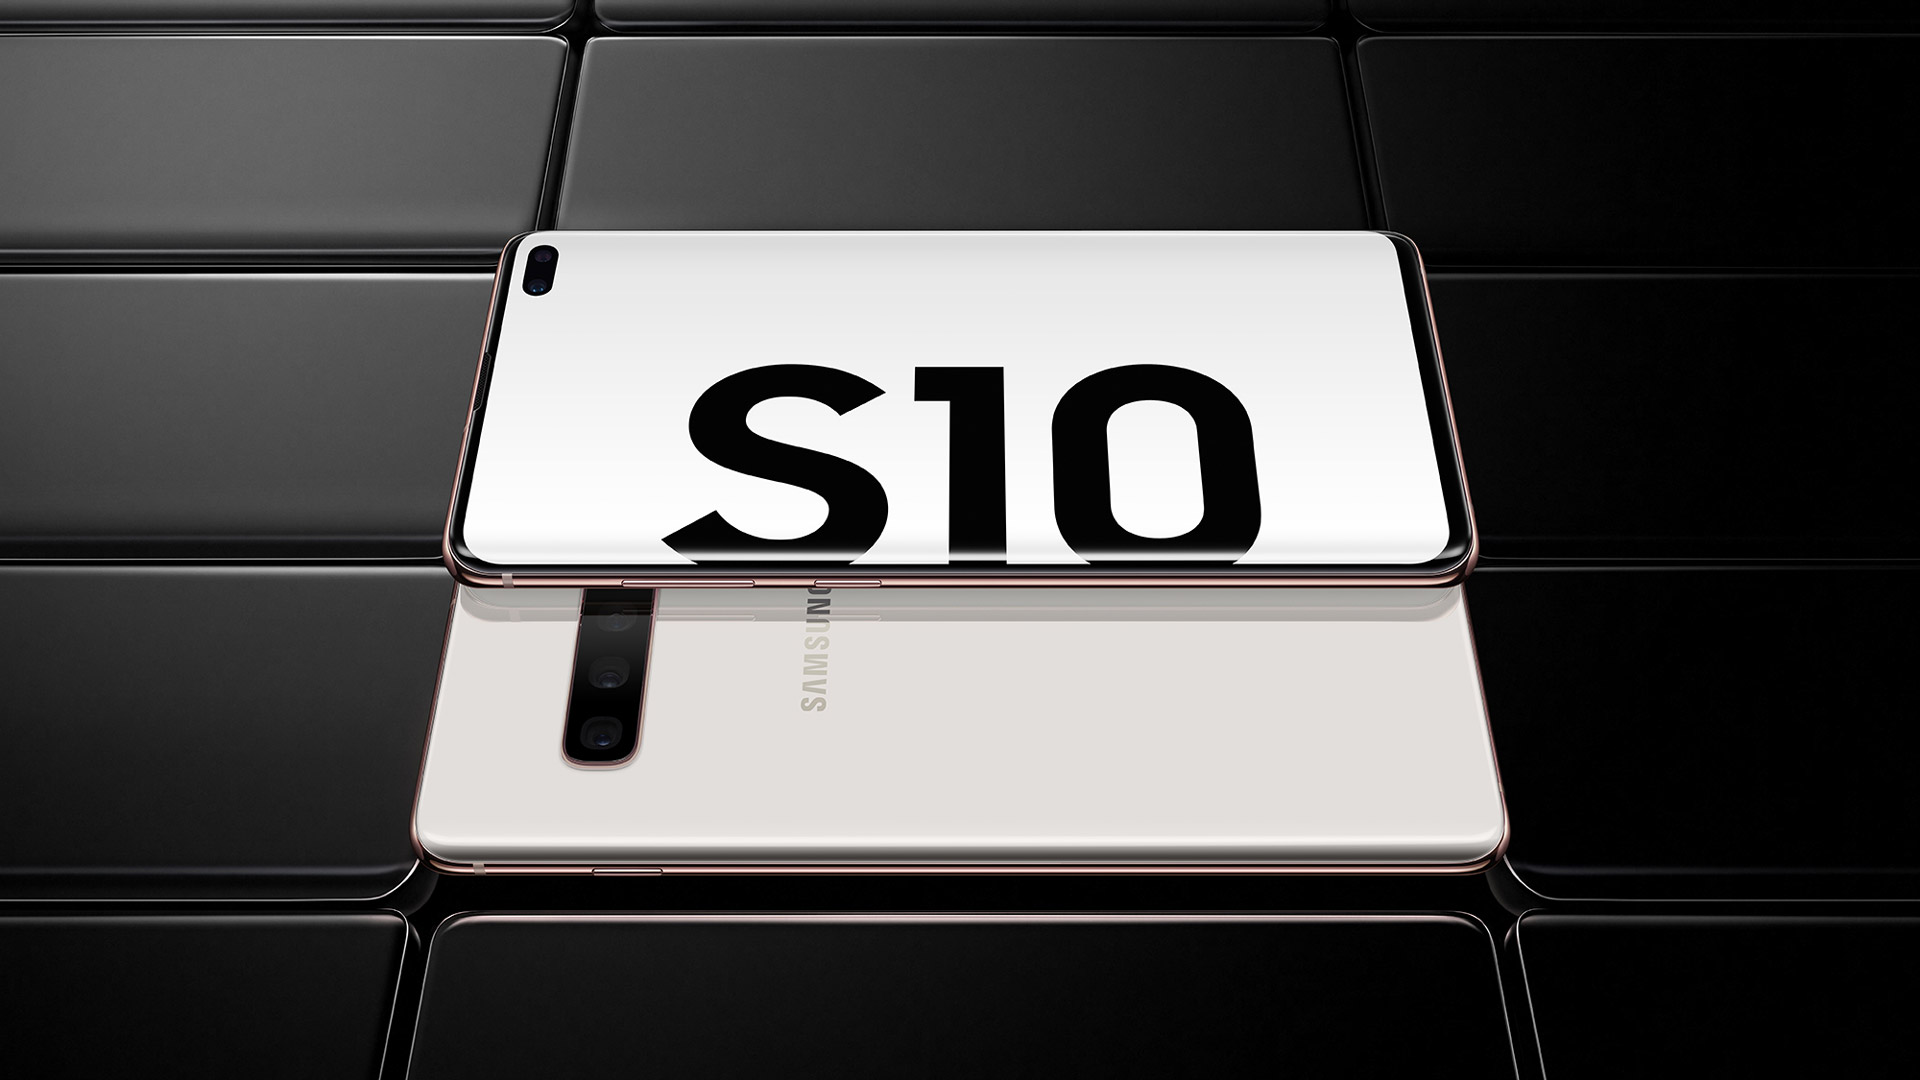 Samsung's New Galaxy S10 Lineup Announced with Gear VR Support